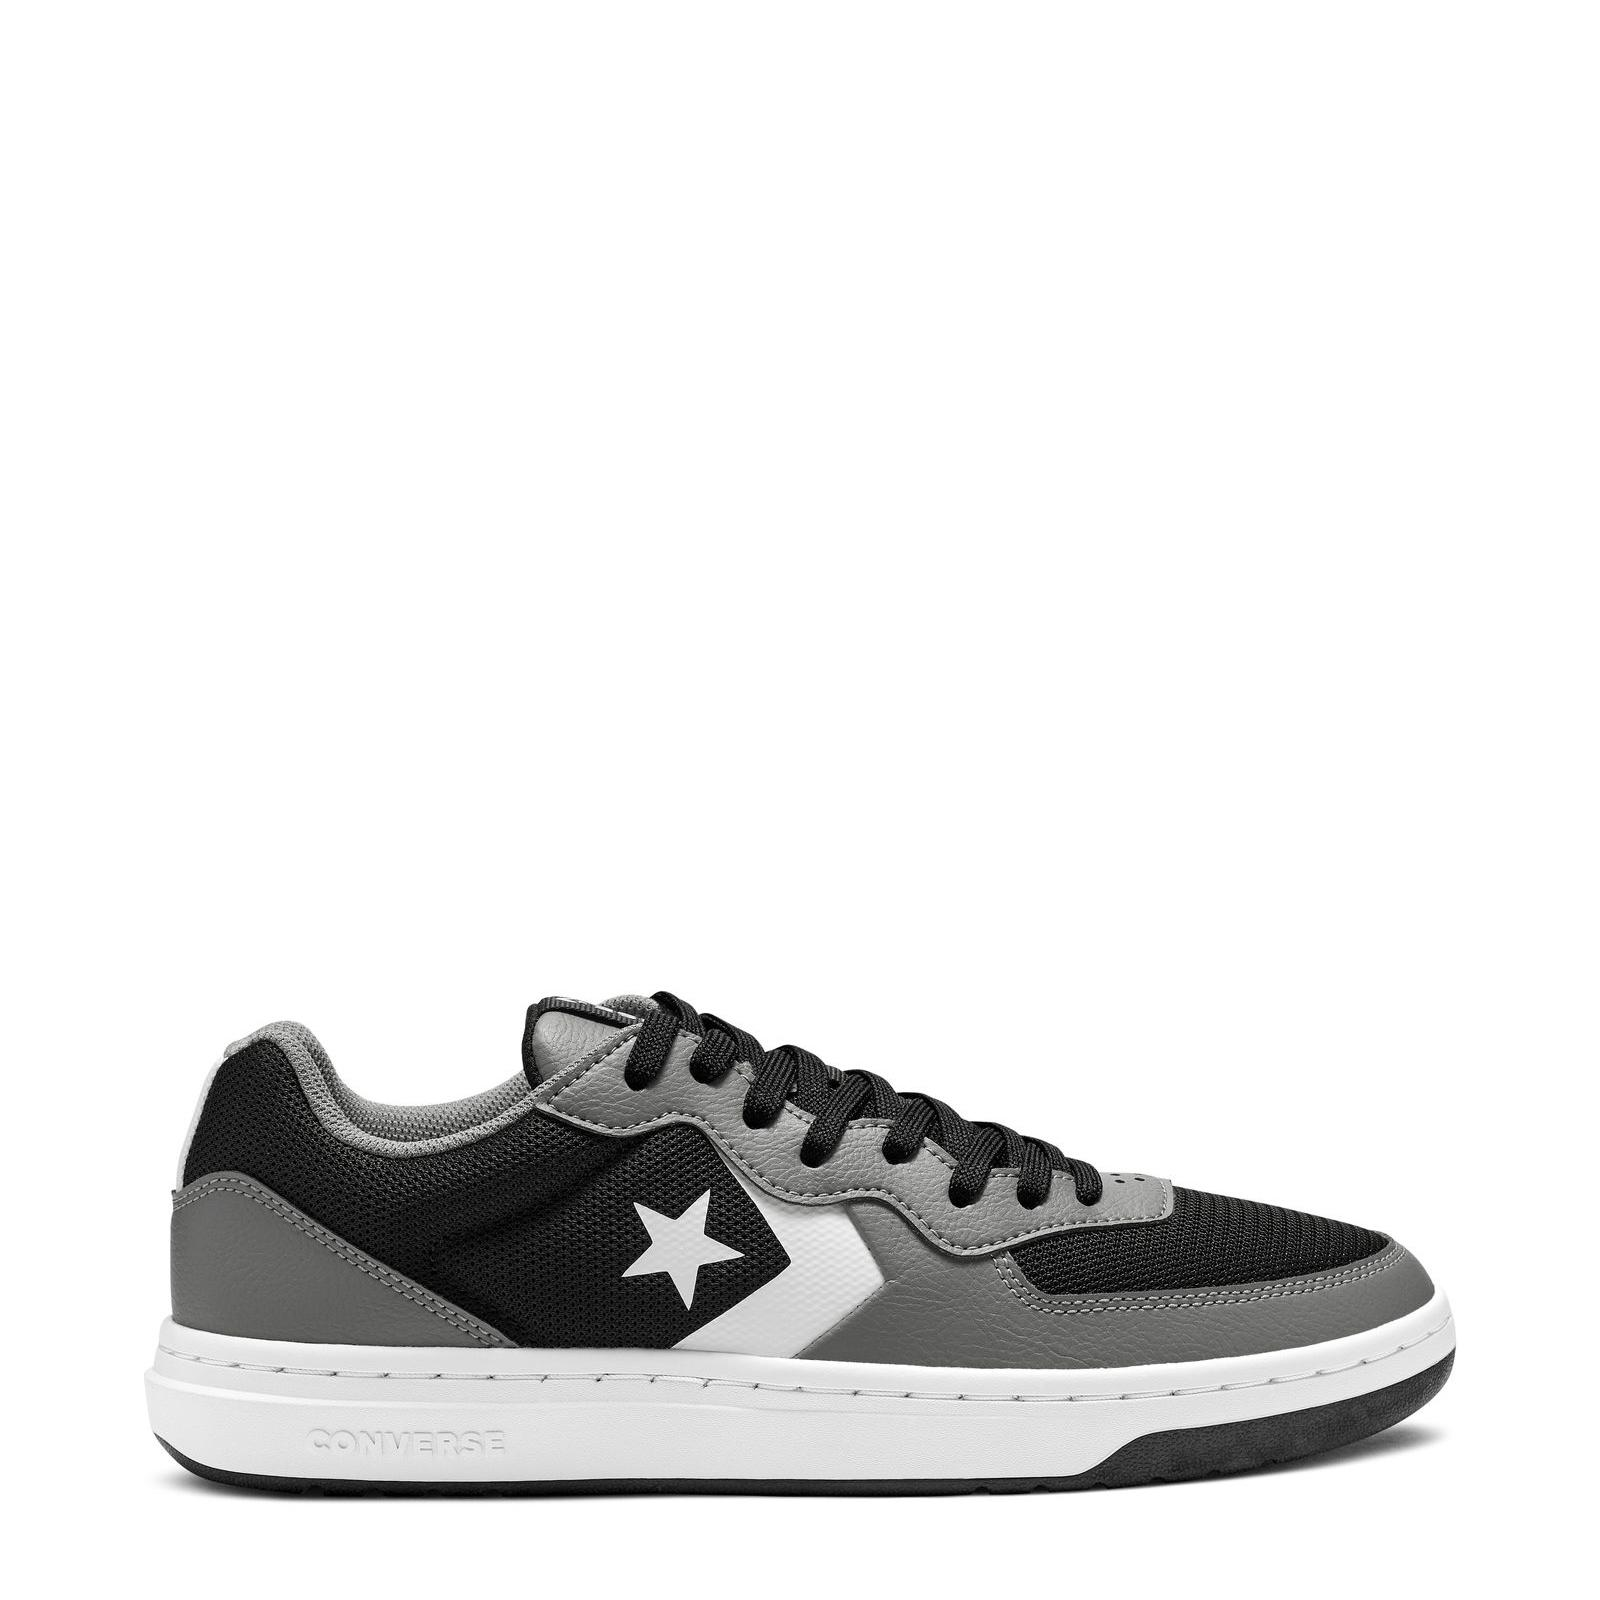 CONVERSE RIVAL SHOOT FOR THE MOON OX BLACKGREYWHITE 817139 164893C